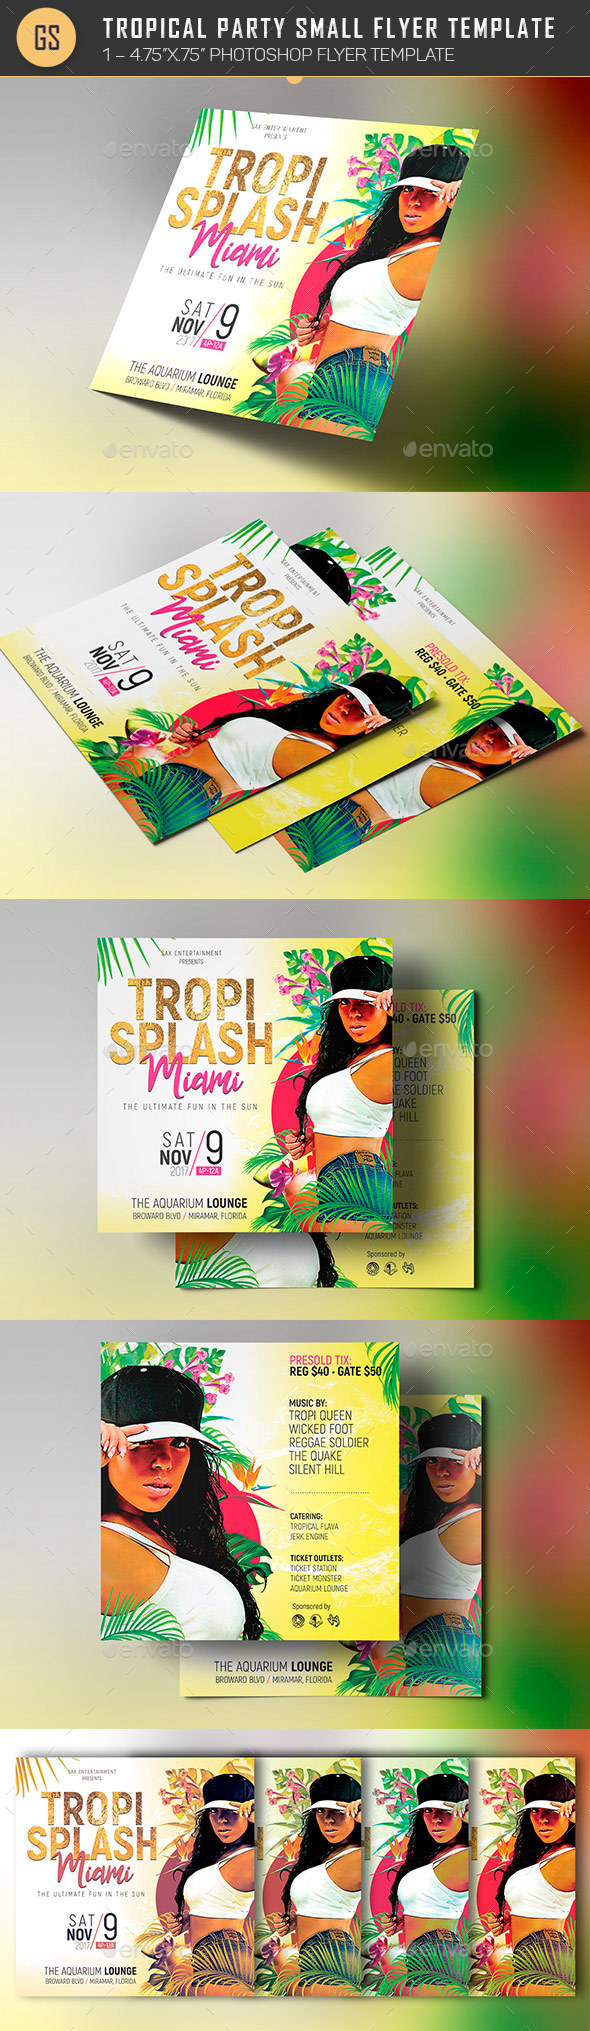 Tropical Party Small Flyer Template - Clubs & Parties Events